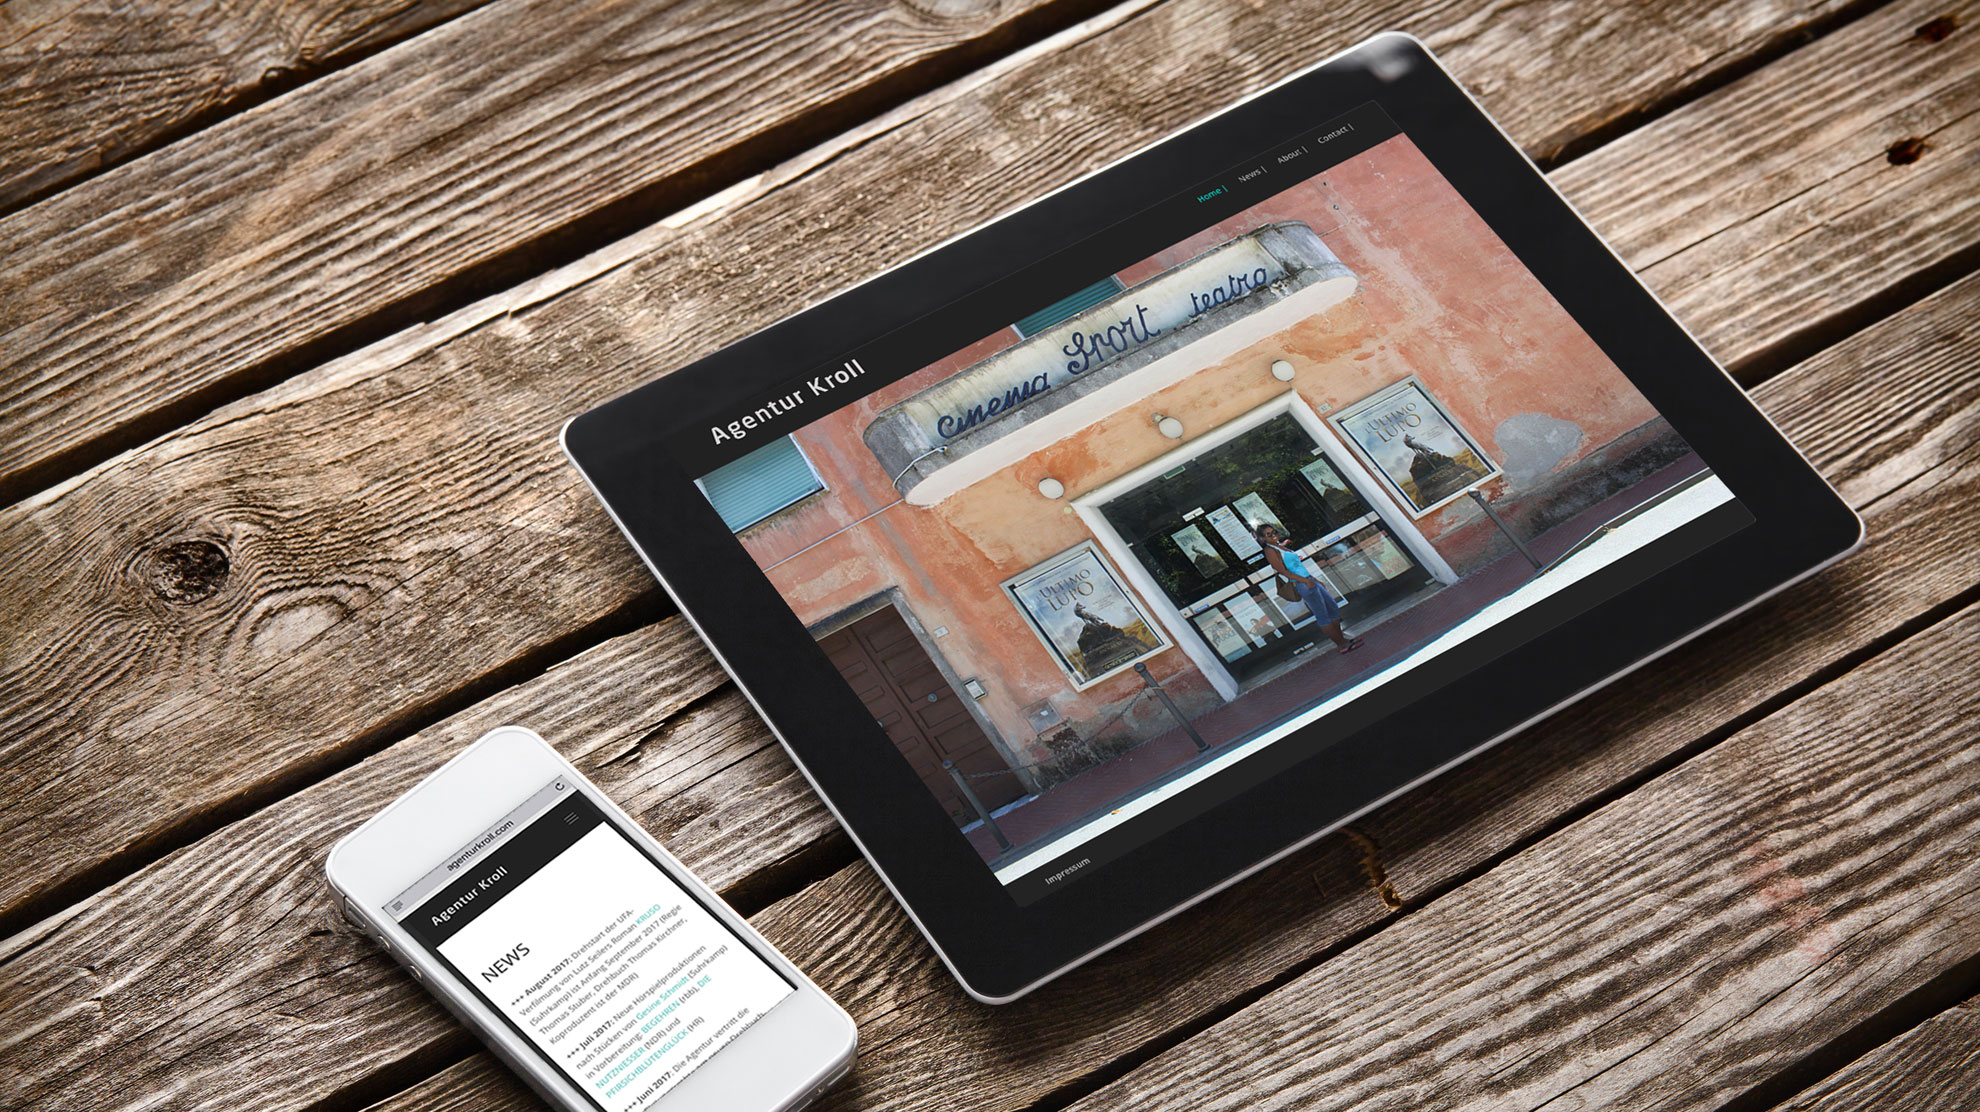 punktneun-Agentur-Kroll-Website-Tablet